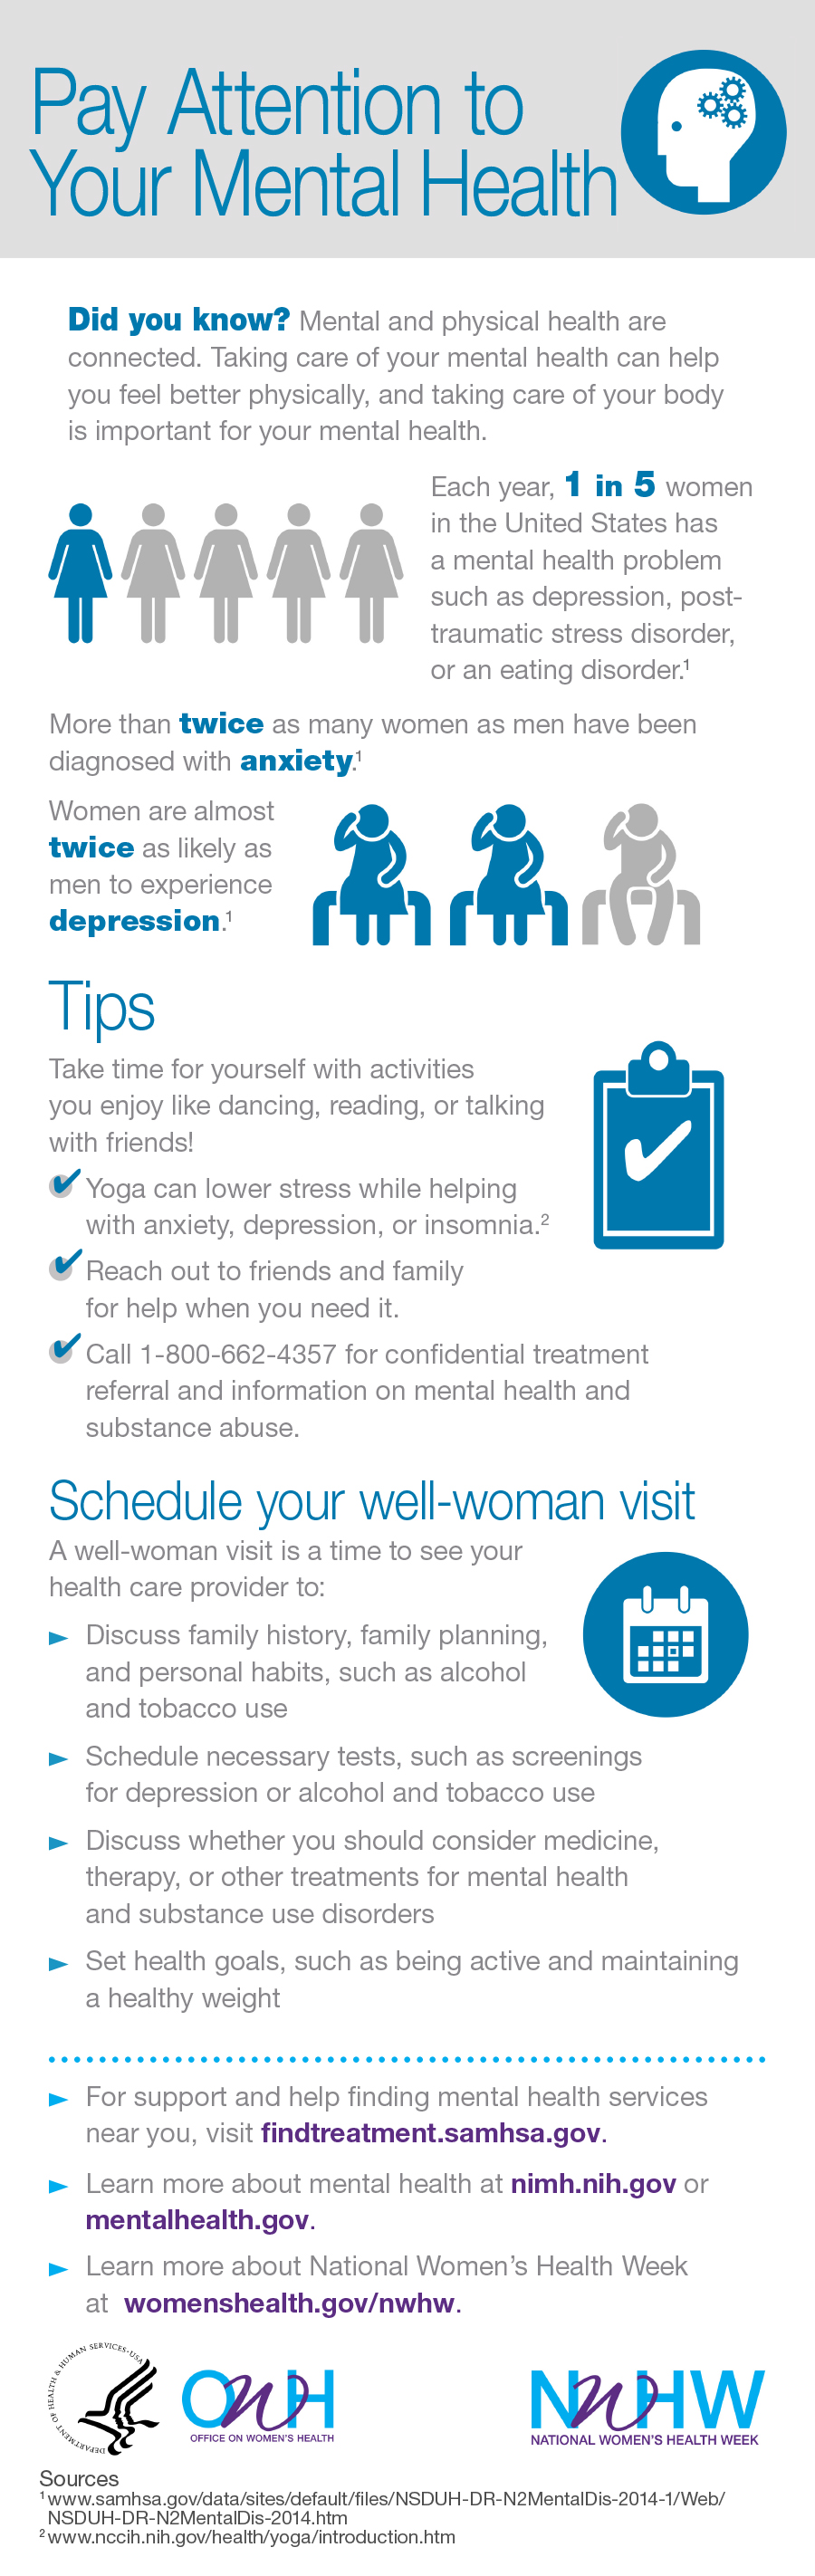 nwhw_infographic-mental-health_0.jpg